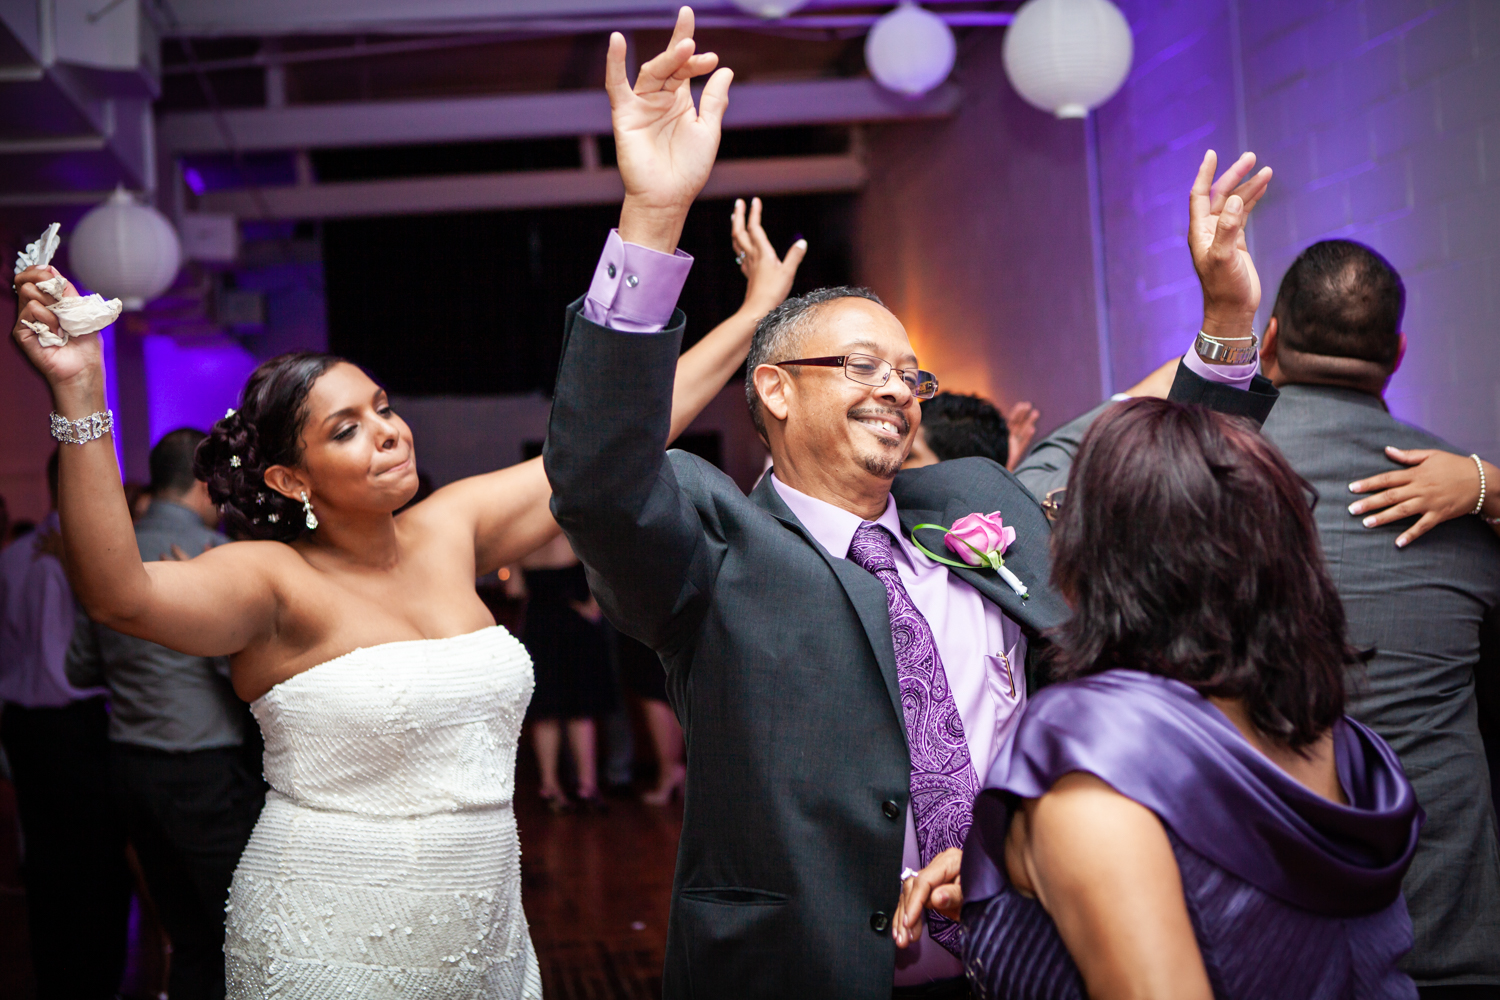 Man dancing in between two women at a wedding reception